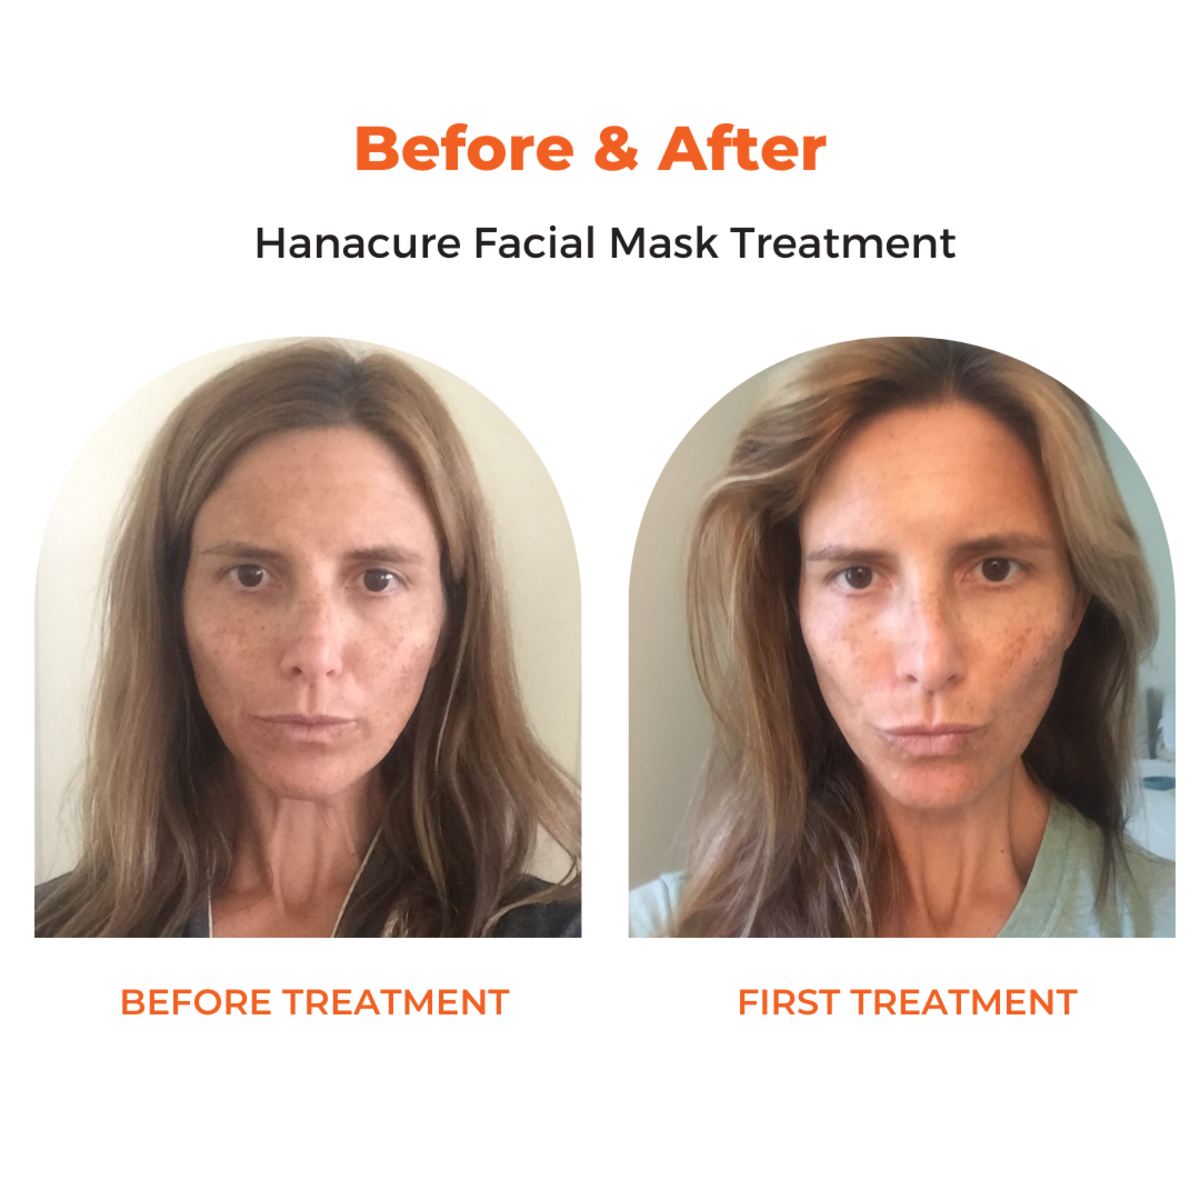 Before and after the first hanacure facial treatment